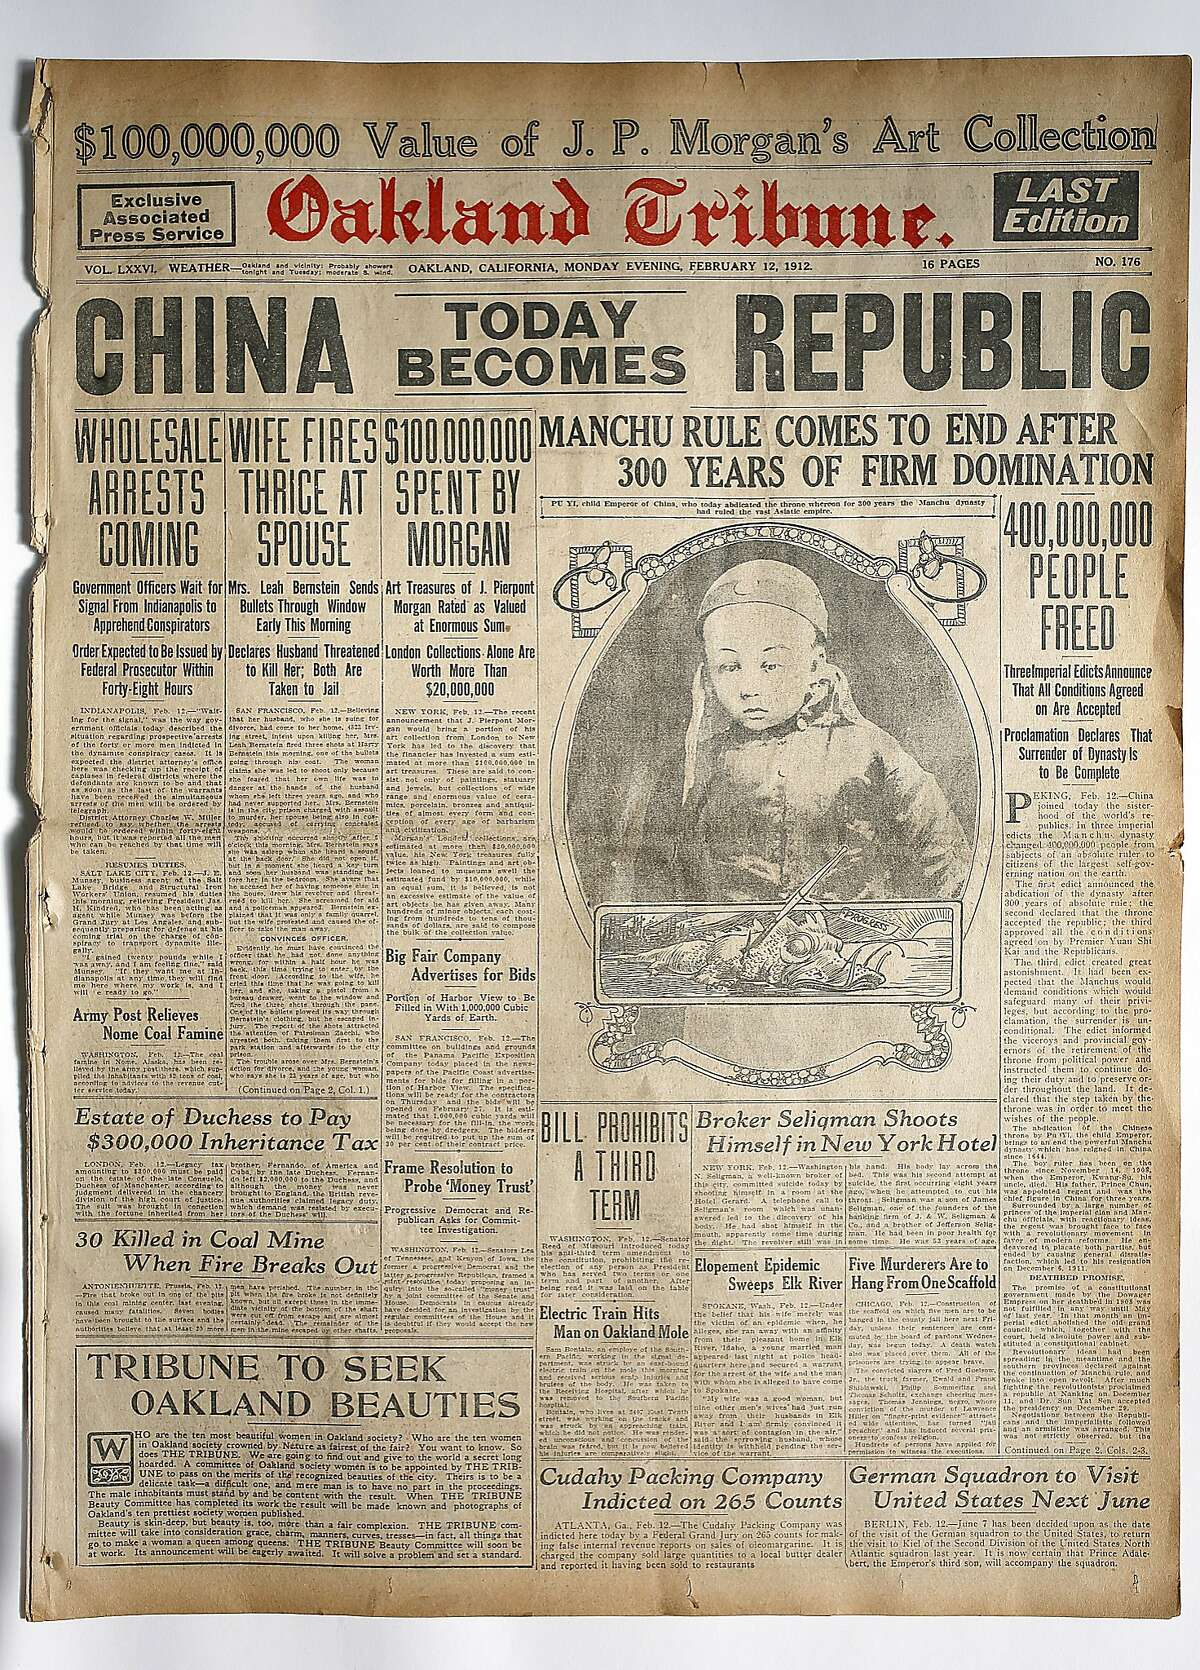 Copy of the Oakland Tribune front page in February 12, 1912 seen in San Francisco, California, on wednesday, march 30, 2016. Copy of the Oakland Tribune front page printed in February 12, 1912.